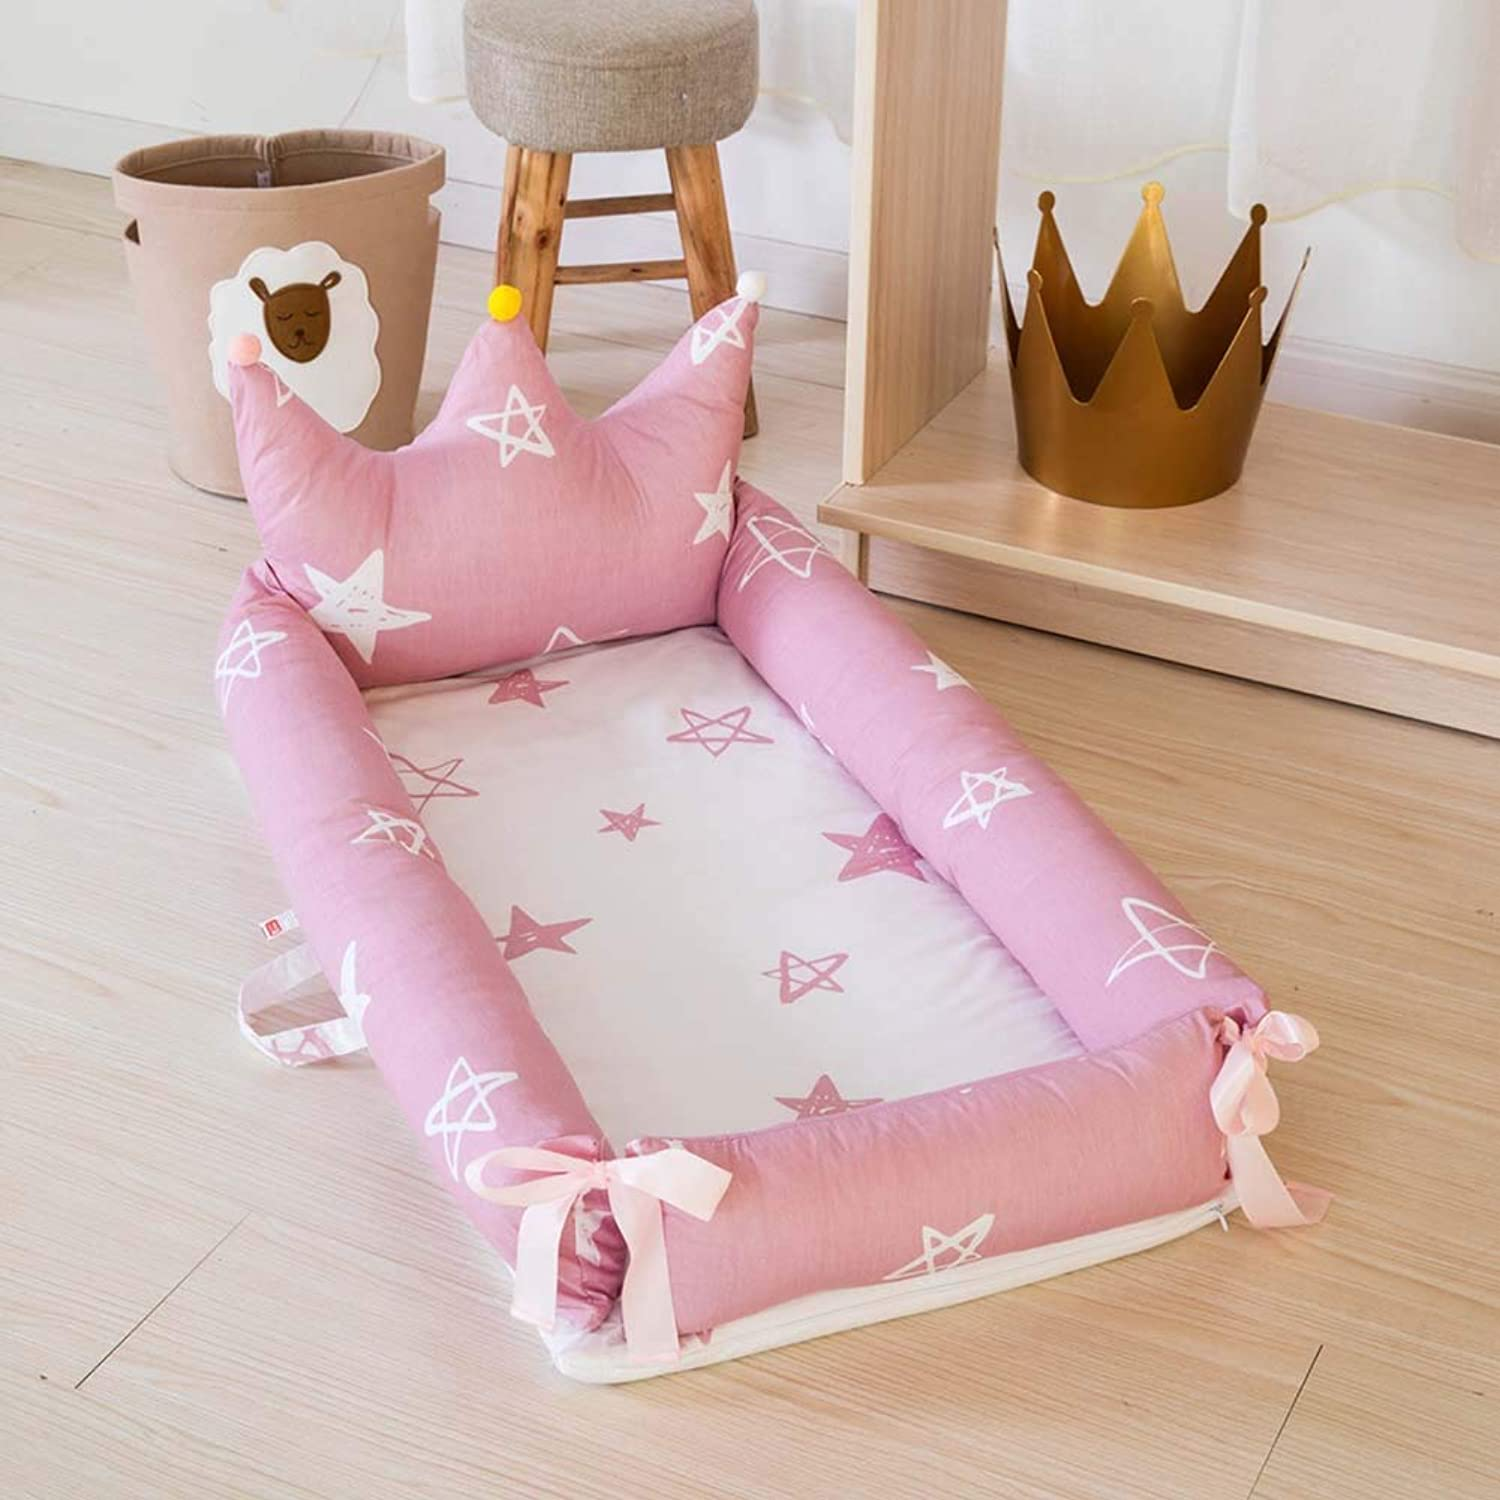 Newborn Portable Imitation Uterine Bed in Bed Fully Detachable Backrest Cot for 0-2 Years Old,C,Smallbed+Pillow